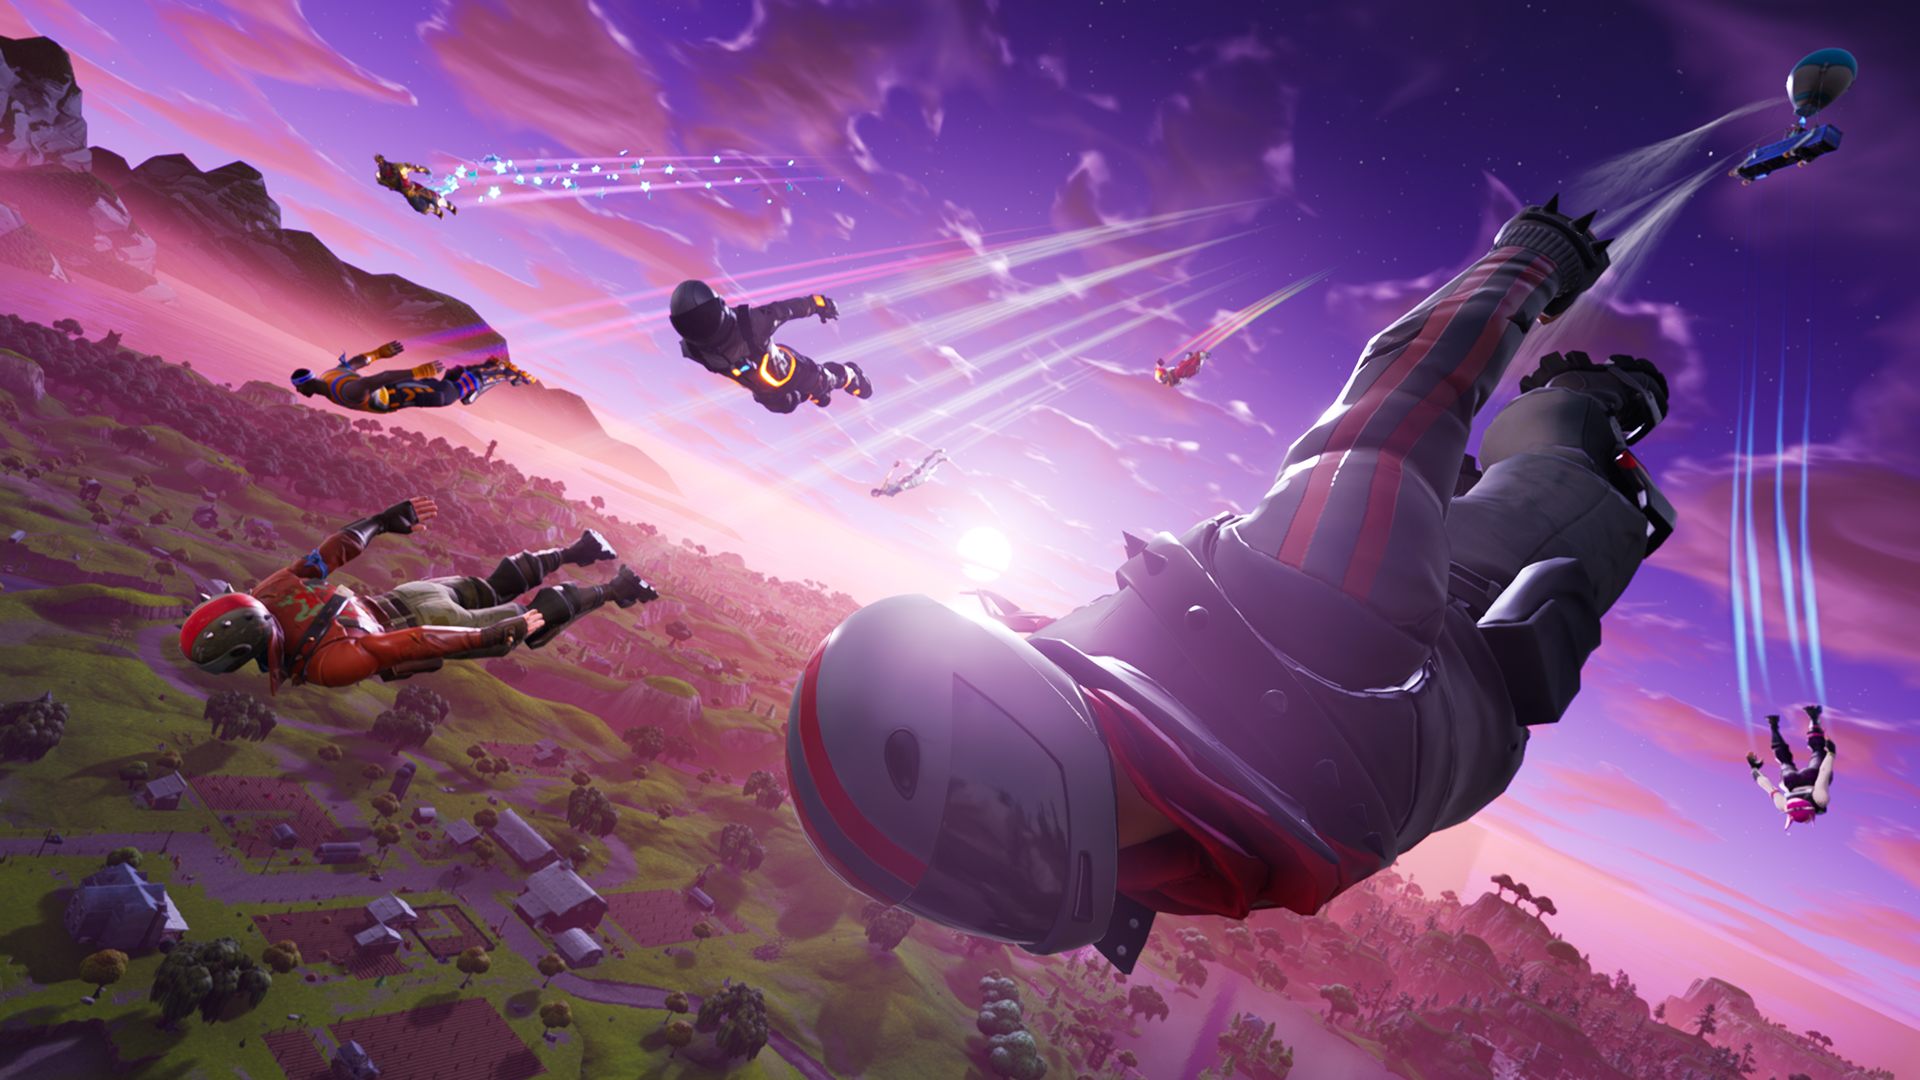 Epic Games  Fortnite Announcing 2018 2019 Fortnite Competitive Season